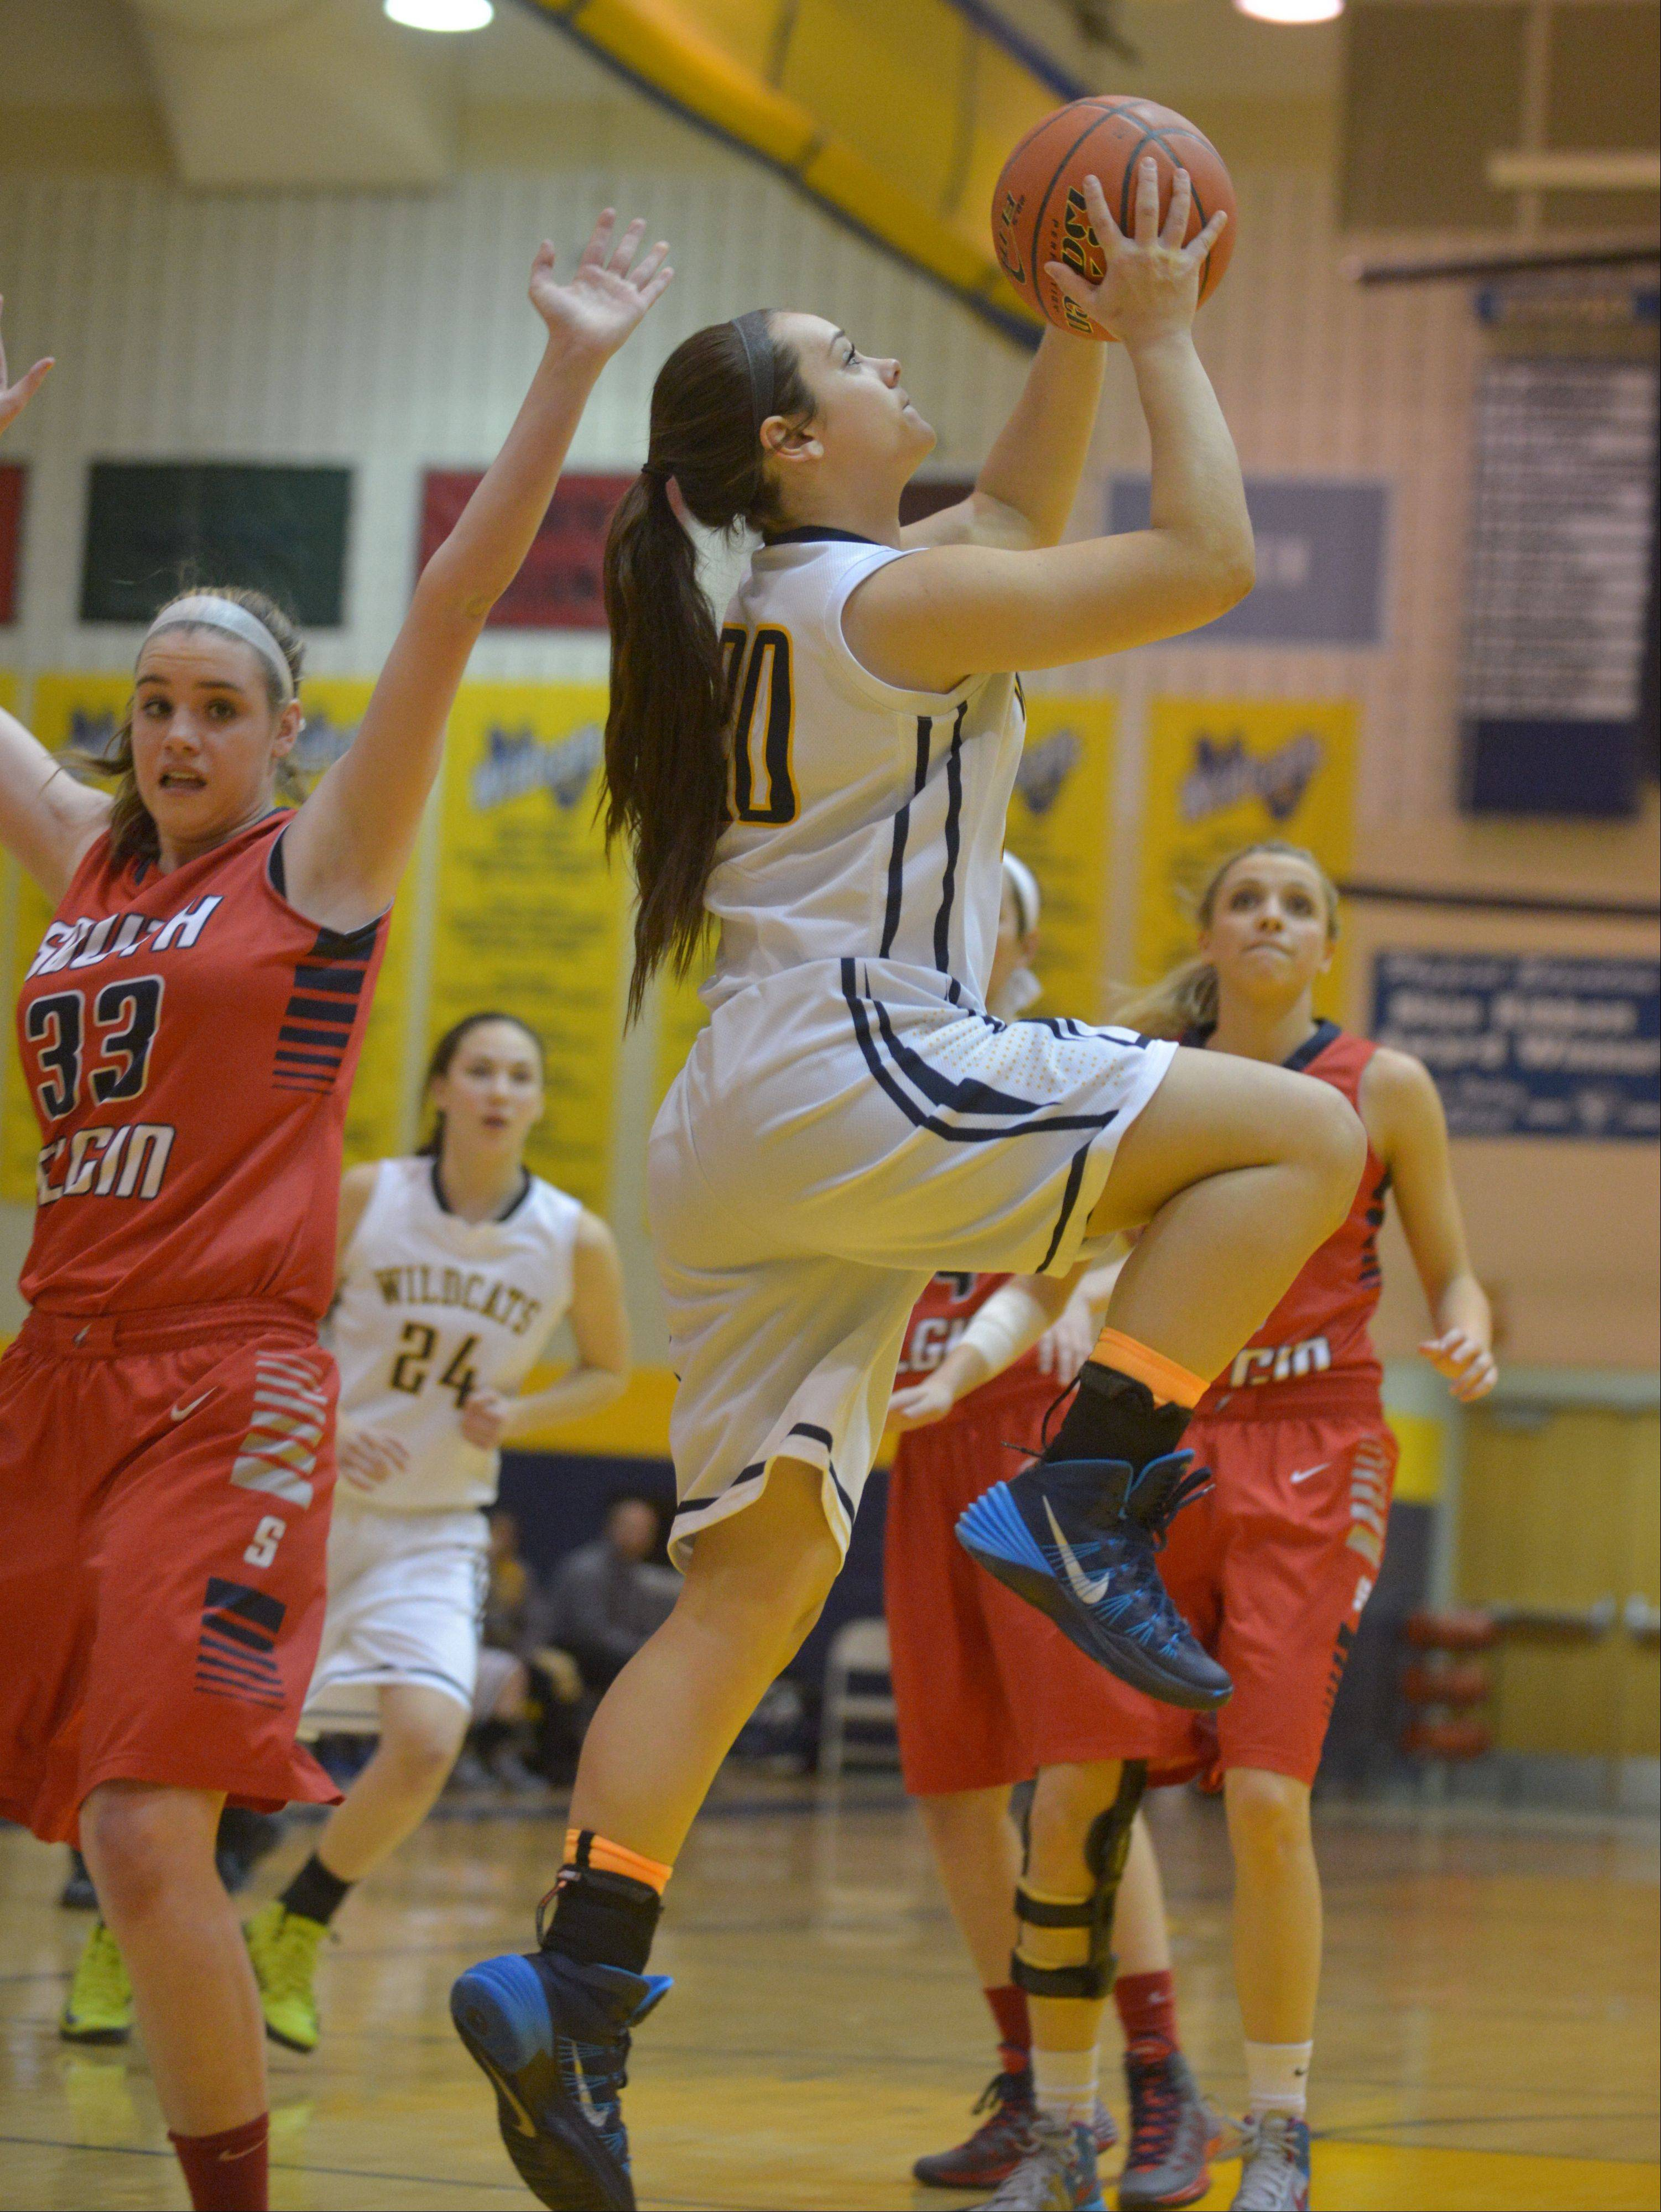 Photos from the South Elgin at Neuqua Valley girls basketball game in Naperville.